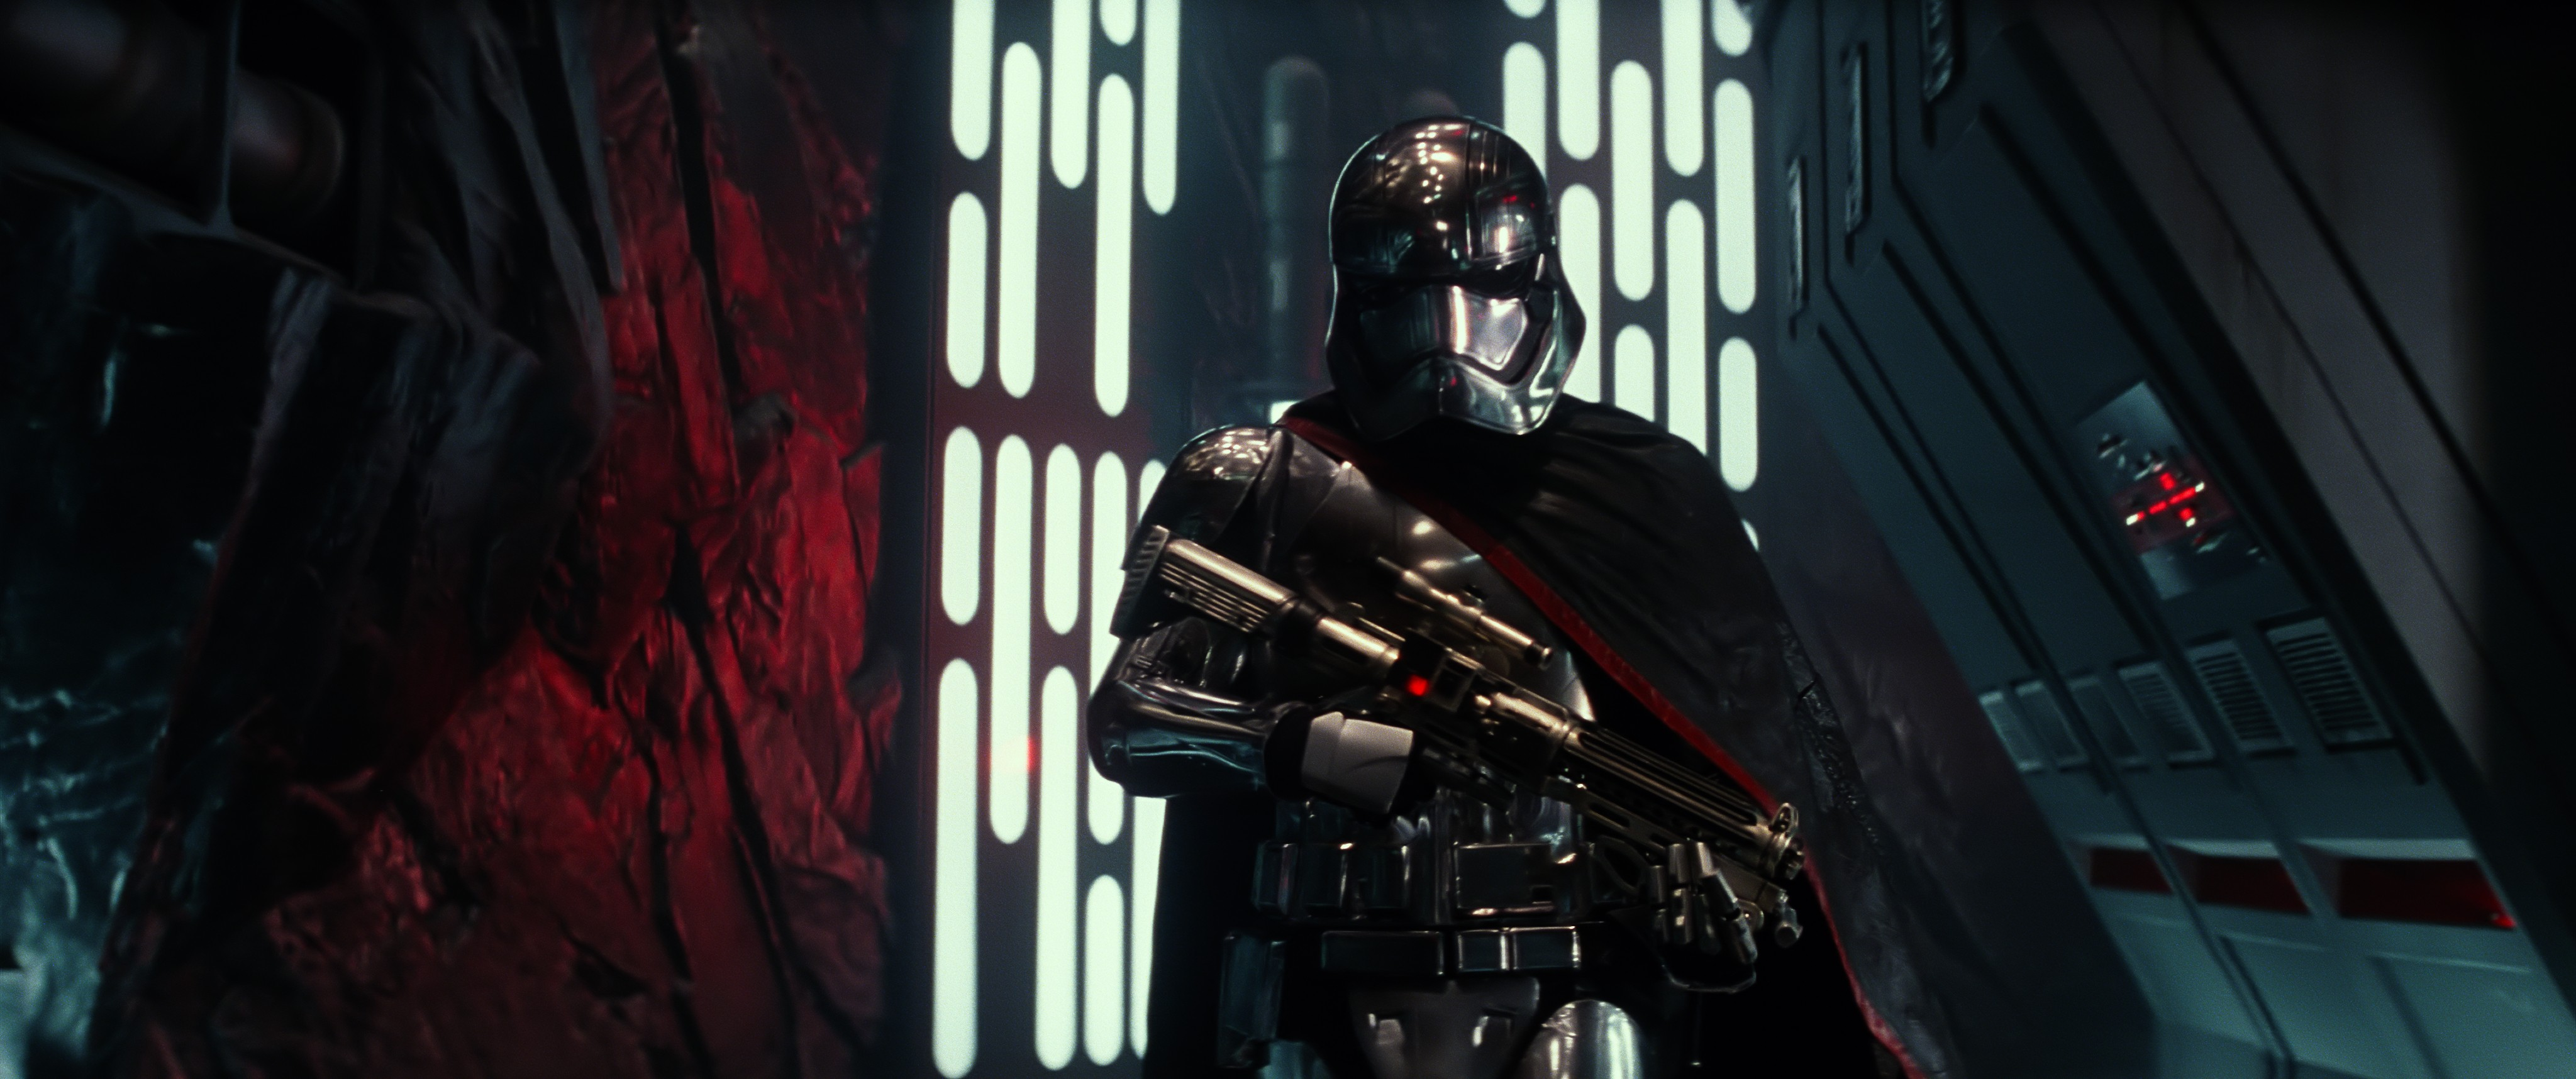 high res star wars the force awakens images cosmic book news